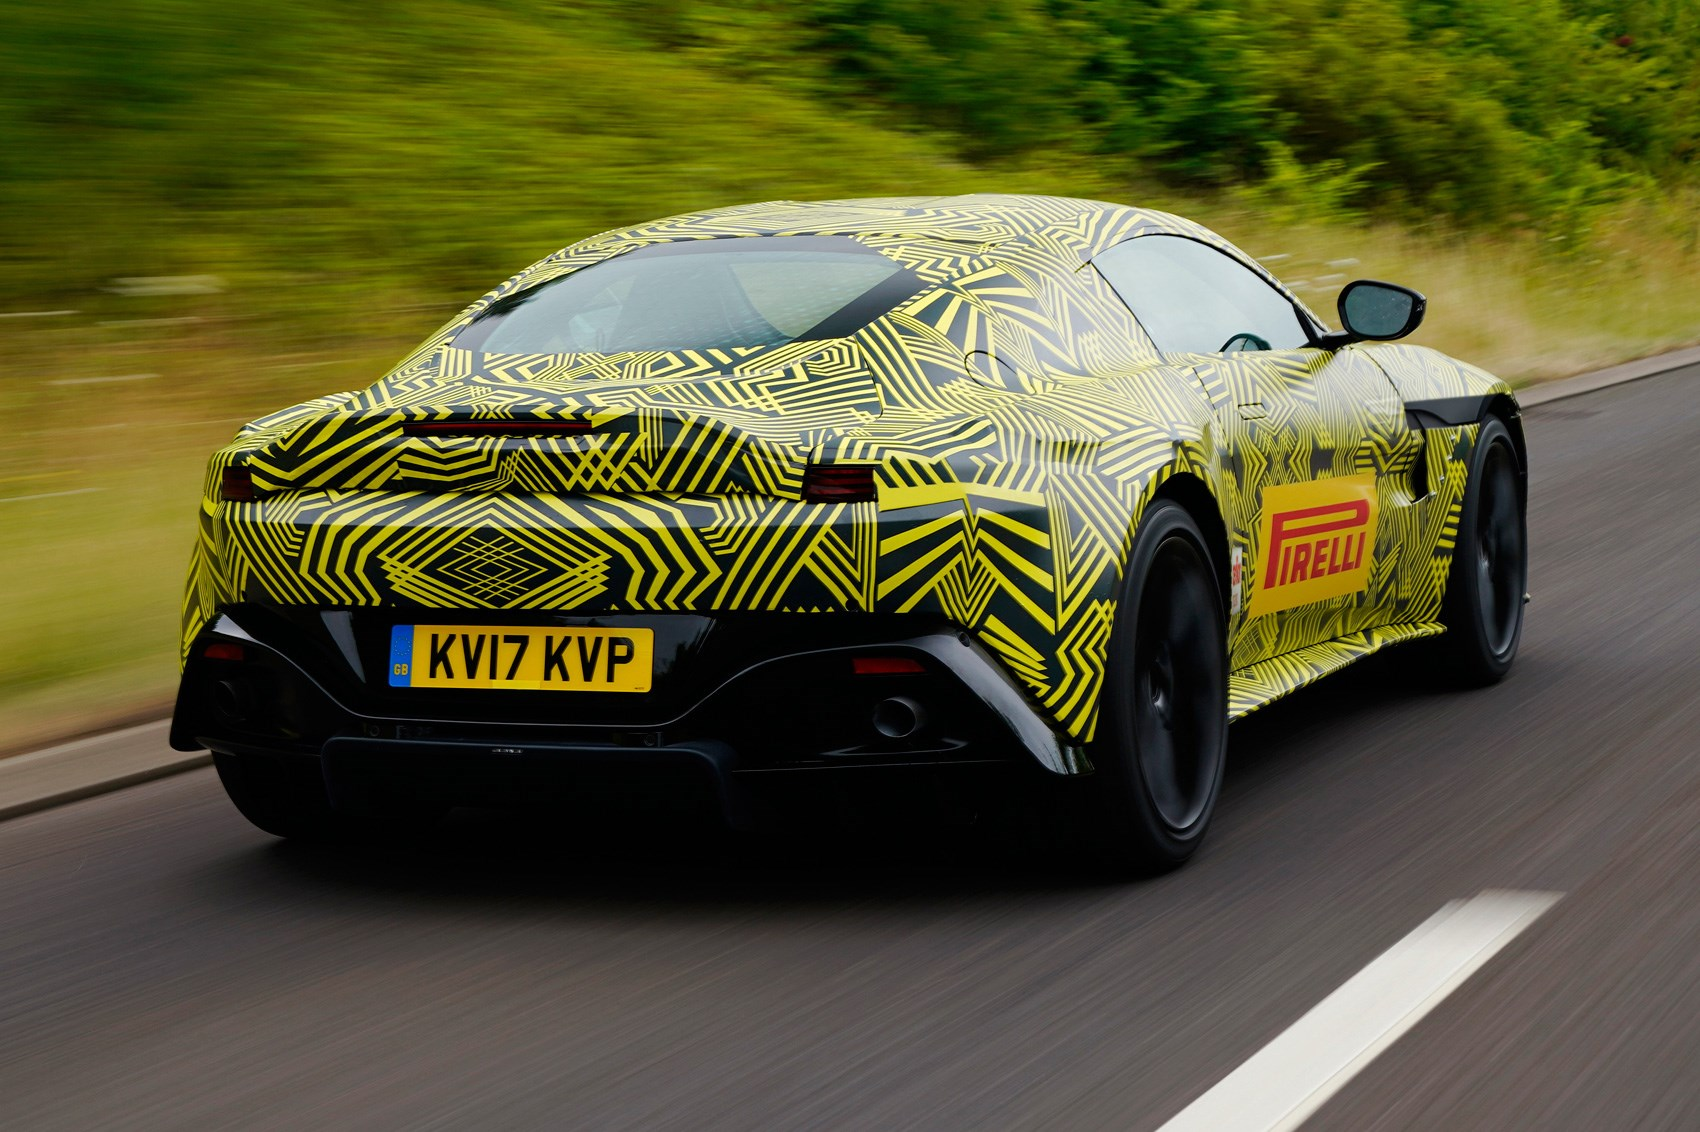 New 2018 Aston Martin Vantage Pics Specs Prices Car Magazine